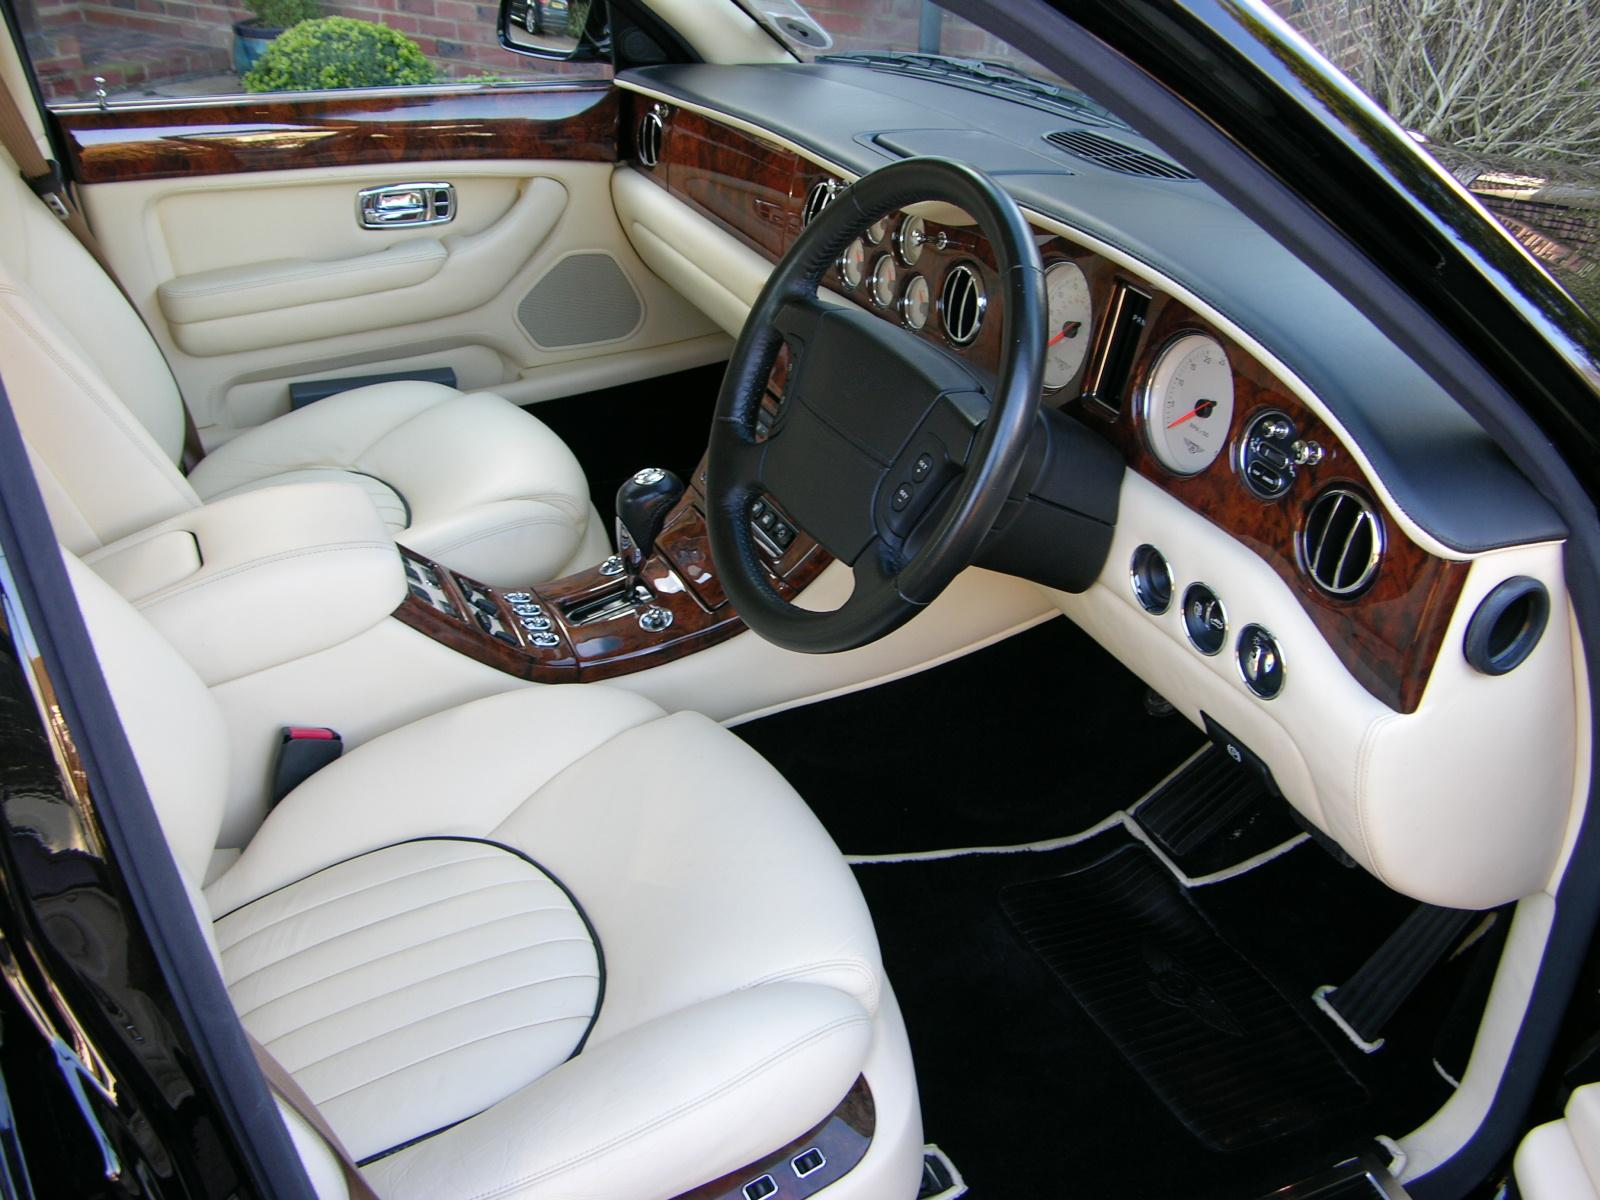 File2001 bentley arnage red label flickr the car spy 18g file2001 bentley arnage red label flickr the car spy 18 vanachro Choice Image